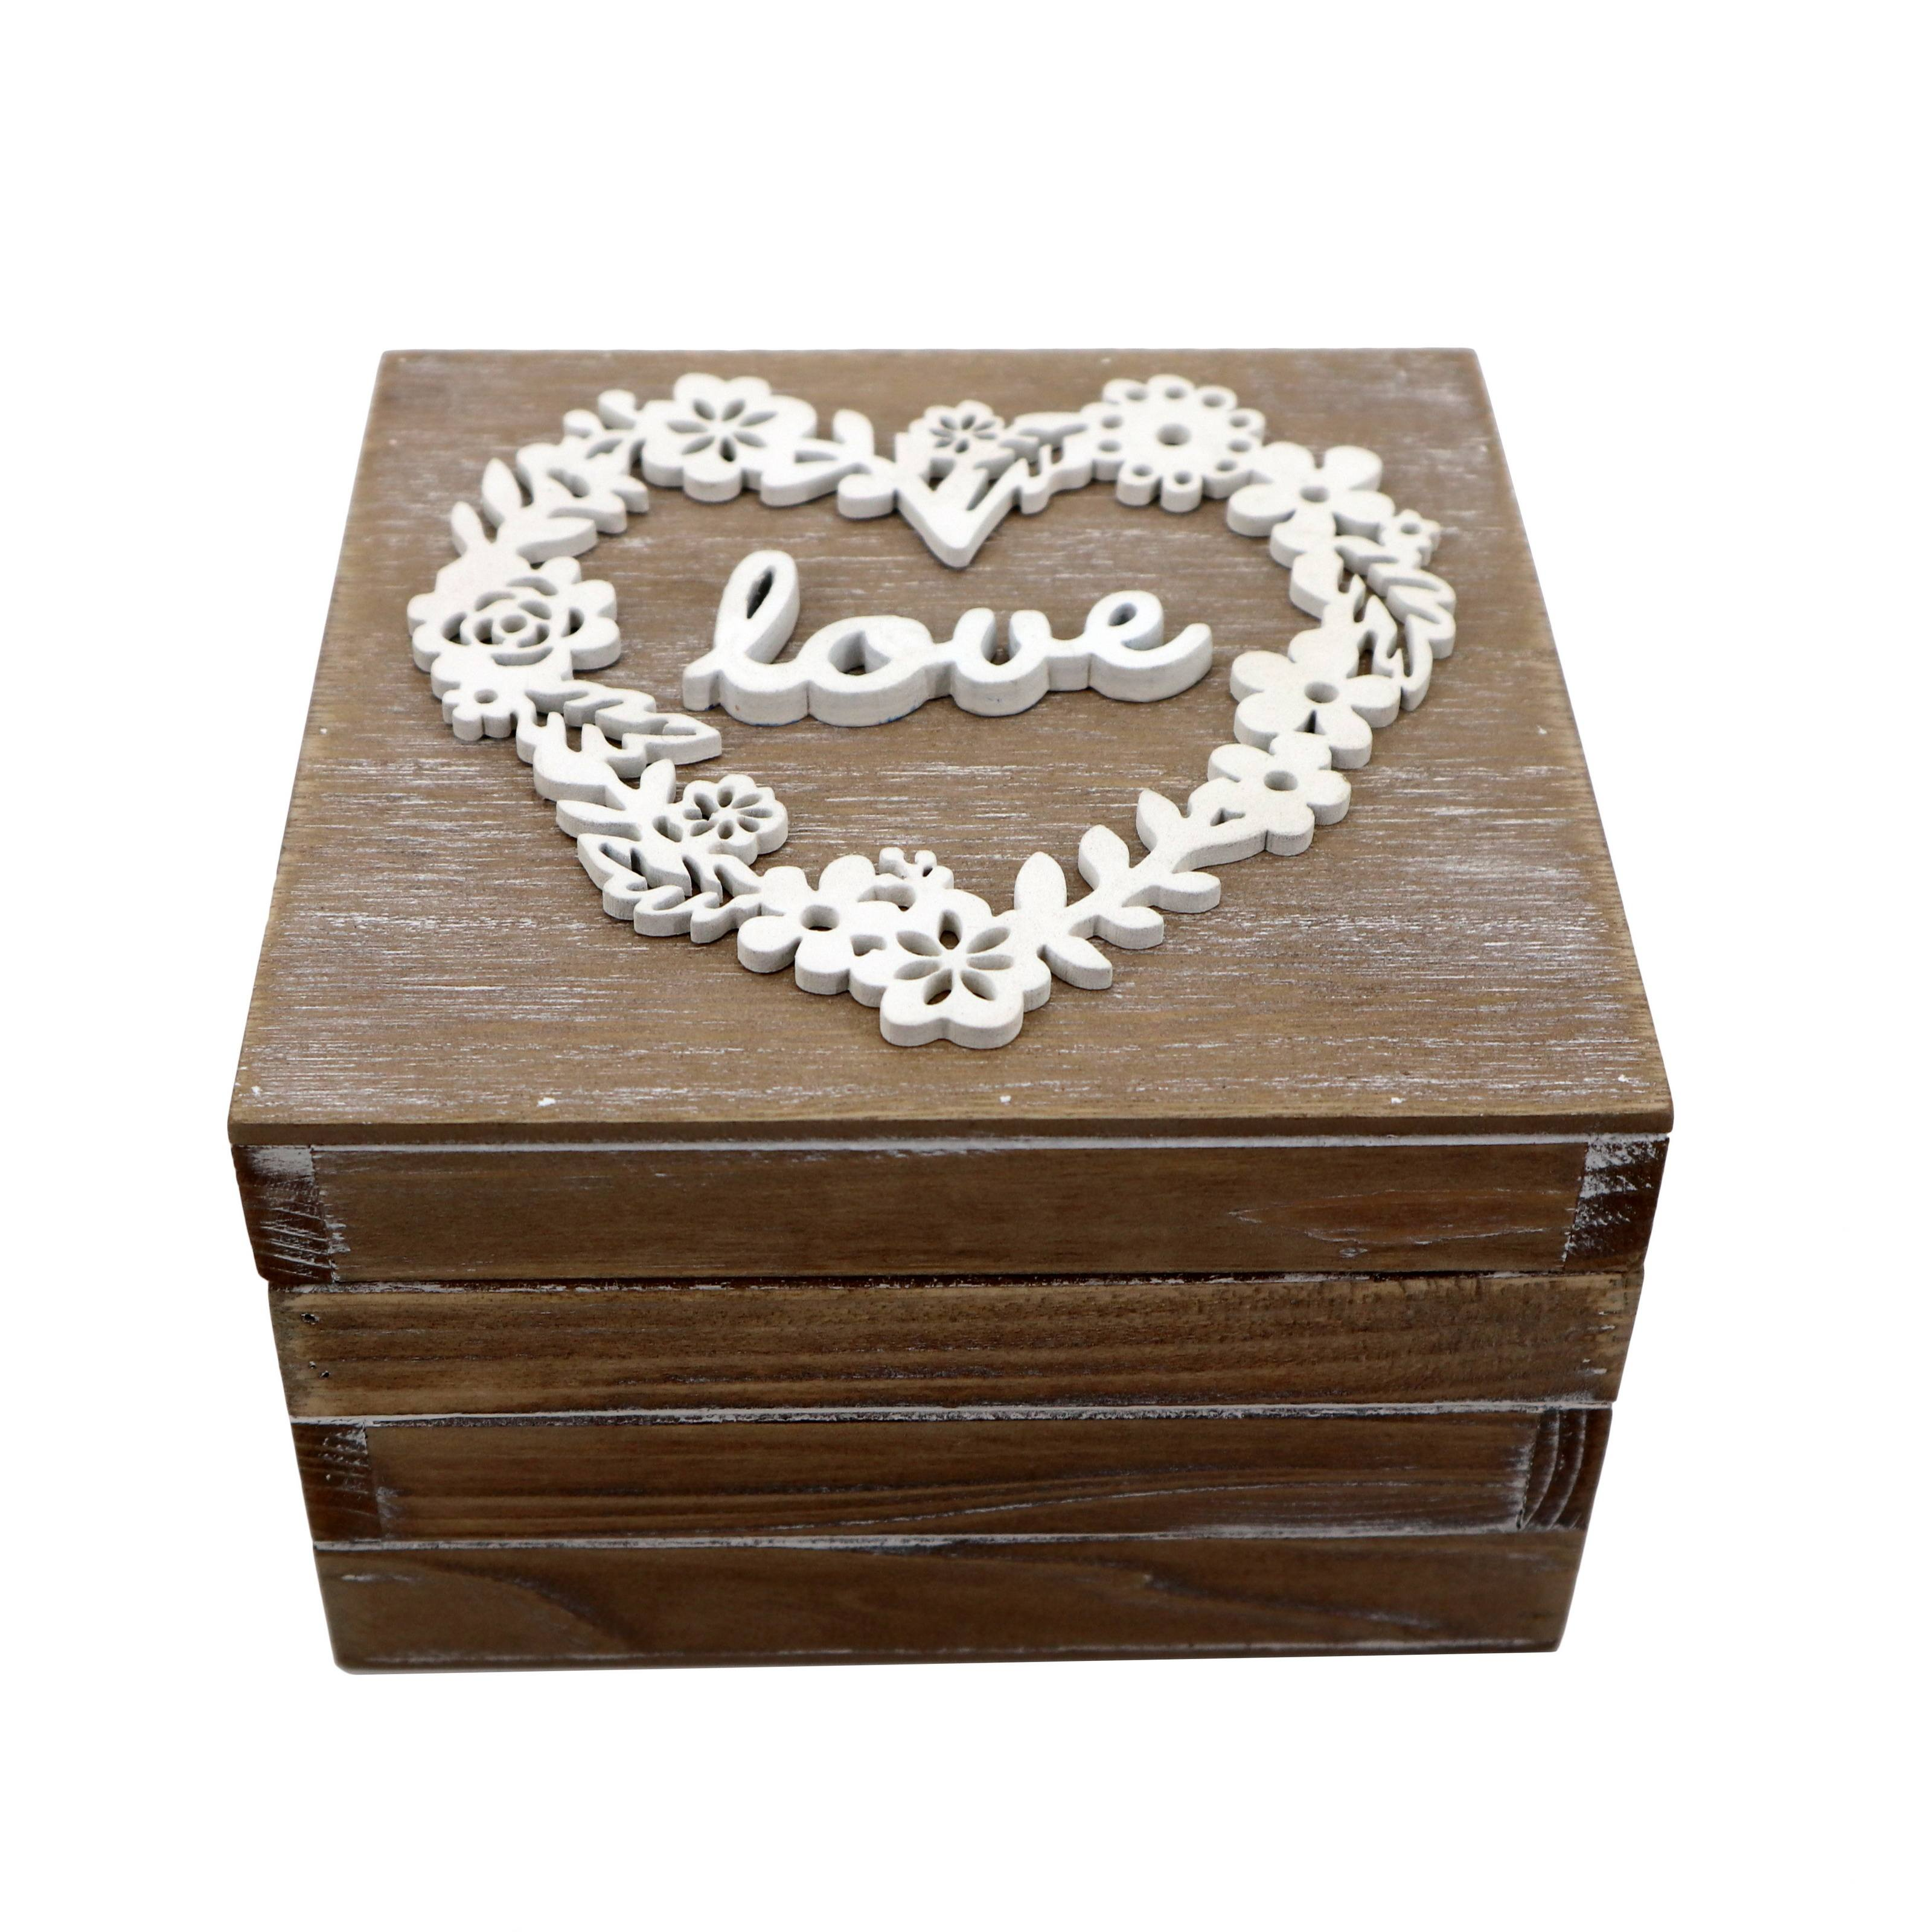 Hot sale wooden decorative home jewely natural storage box small wooden boxes